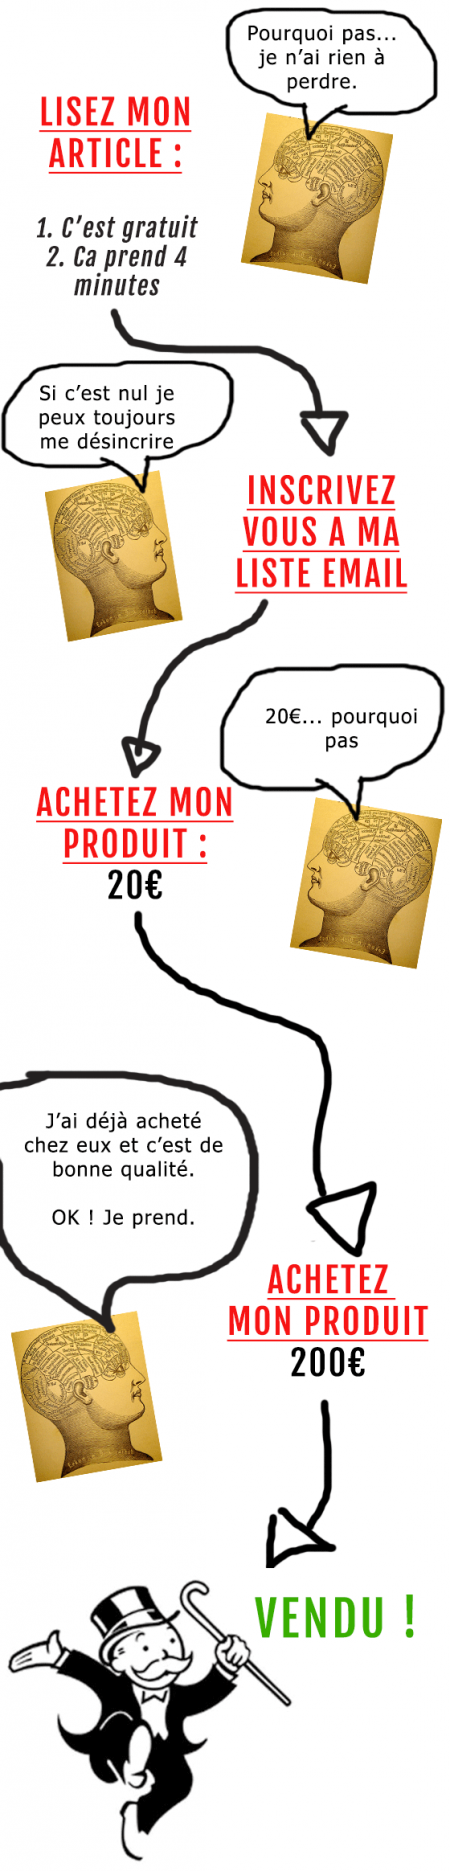 marketing-mania-cohérence-2